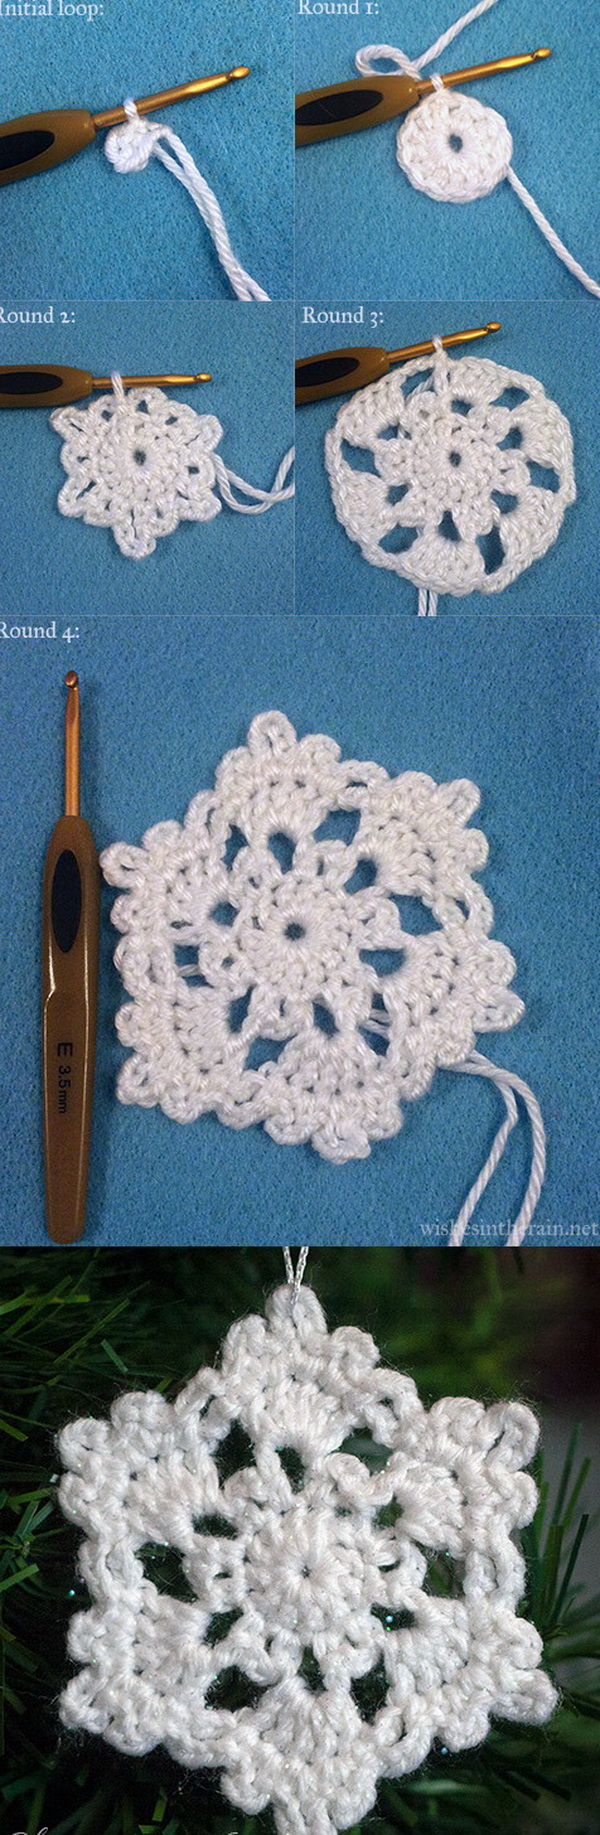 20+ Free Crochet Patterns for Christmas - Listing More